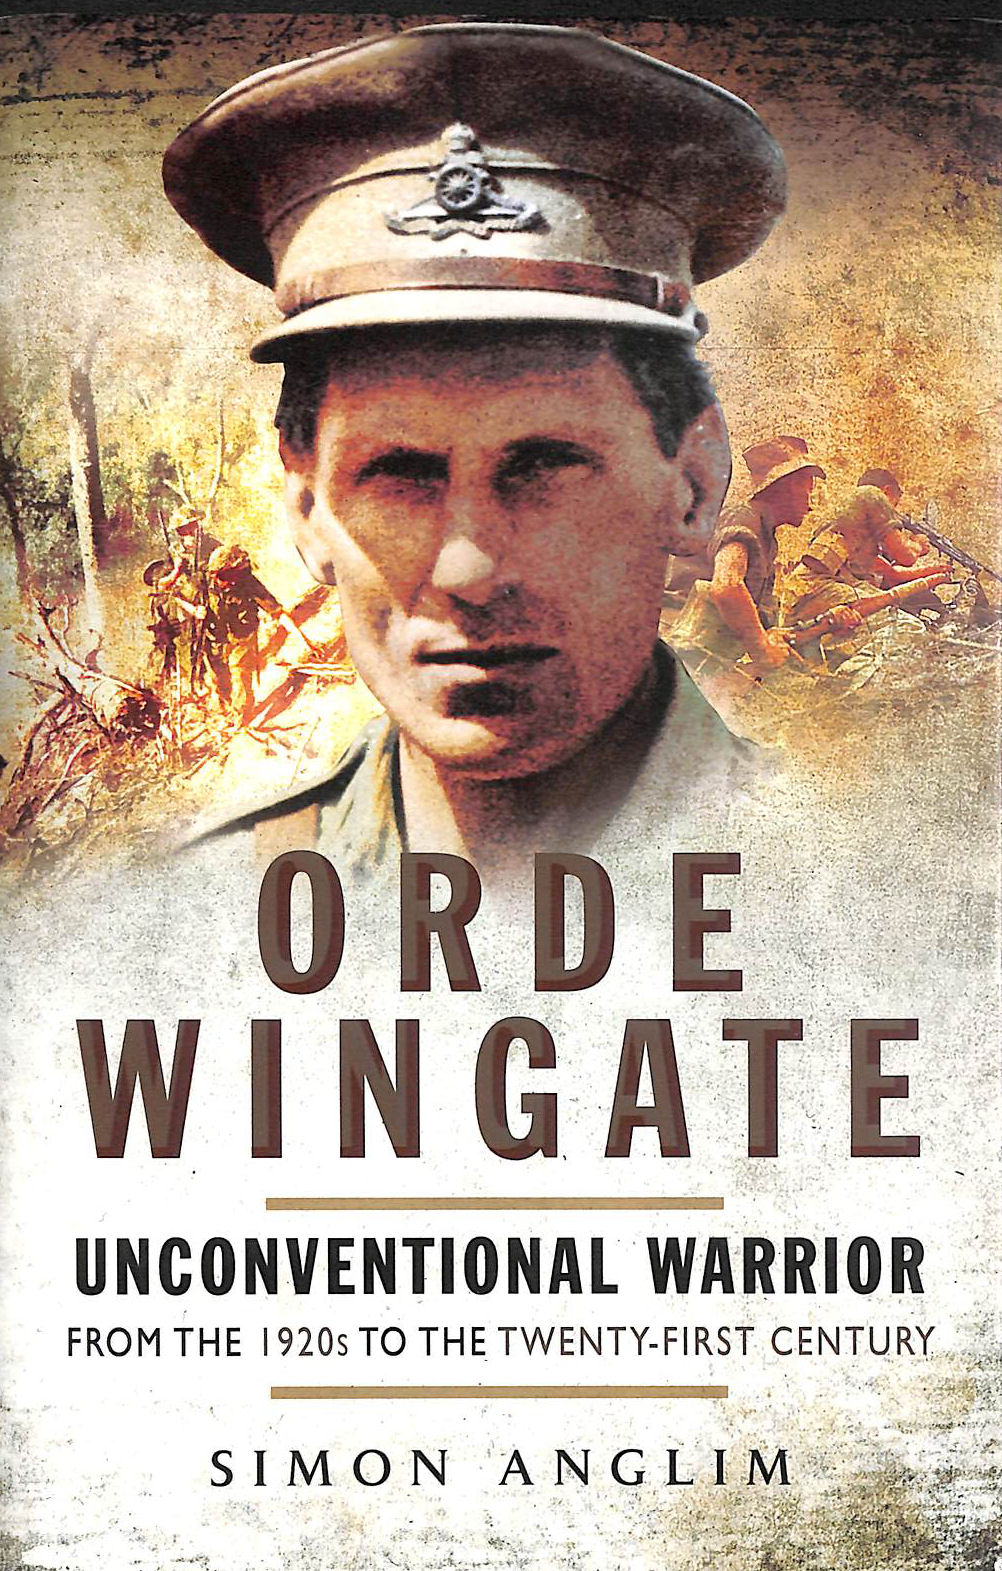 Image for Orde Wingate: Unconventional Warrior - from the 1920s to the Twenty-First Century